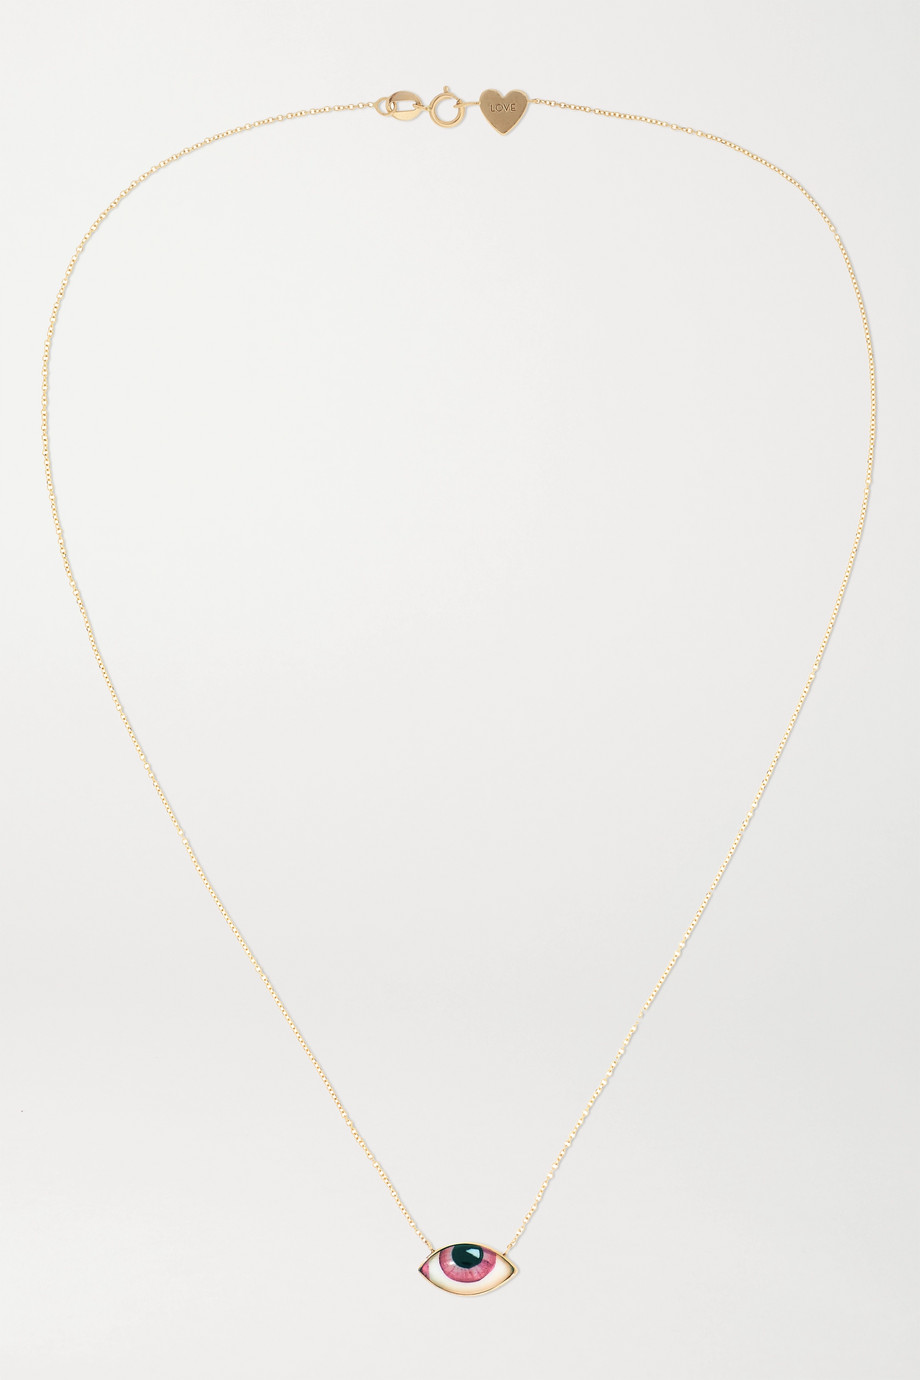 Lito + Racil Tu Es Partout 14-karat gold and enamel necklace